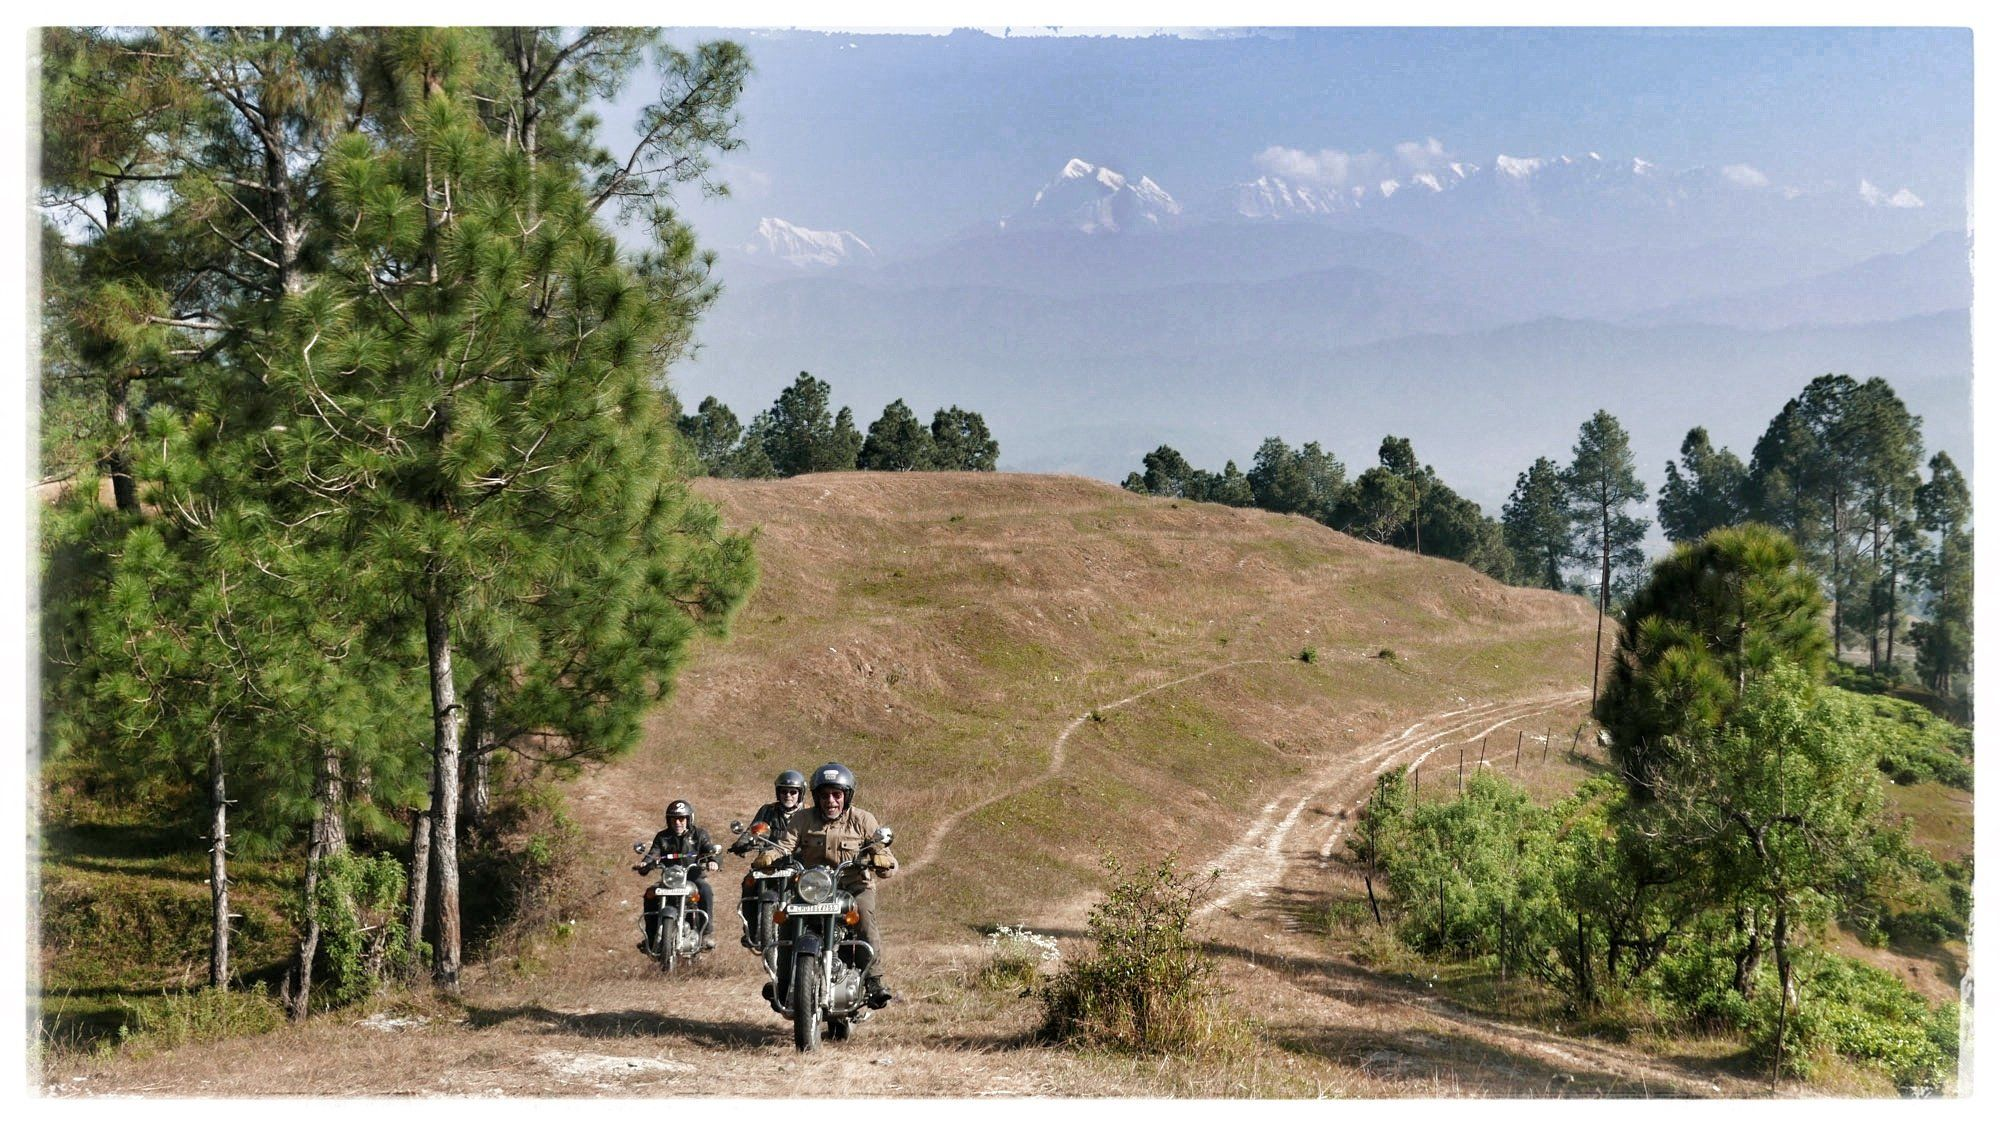 Motorcycle road trip India / Himalaya - The Routes of Hinduism